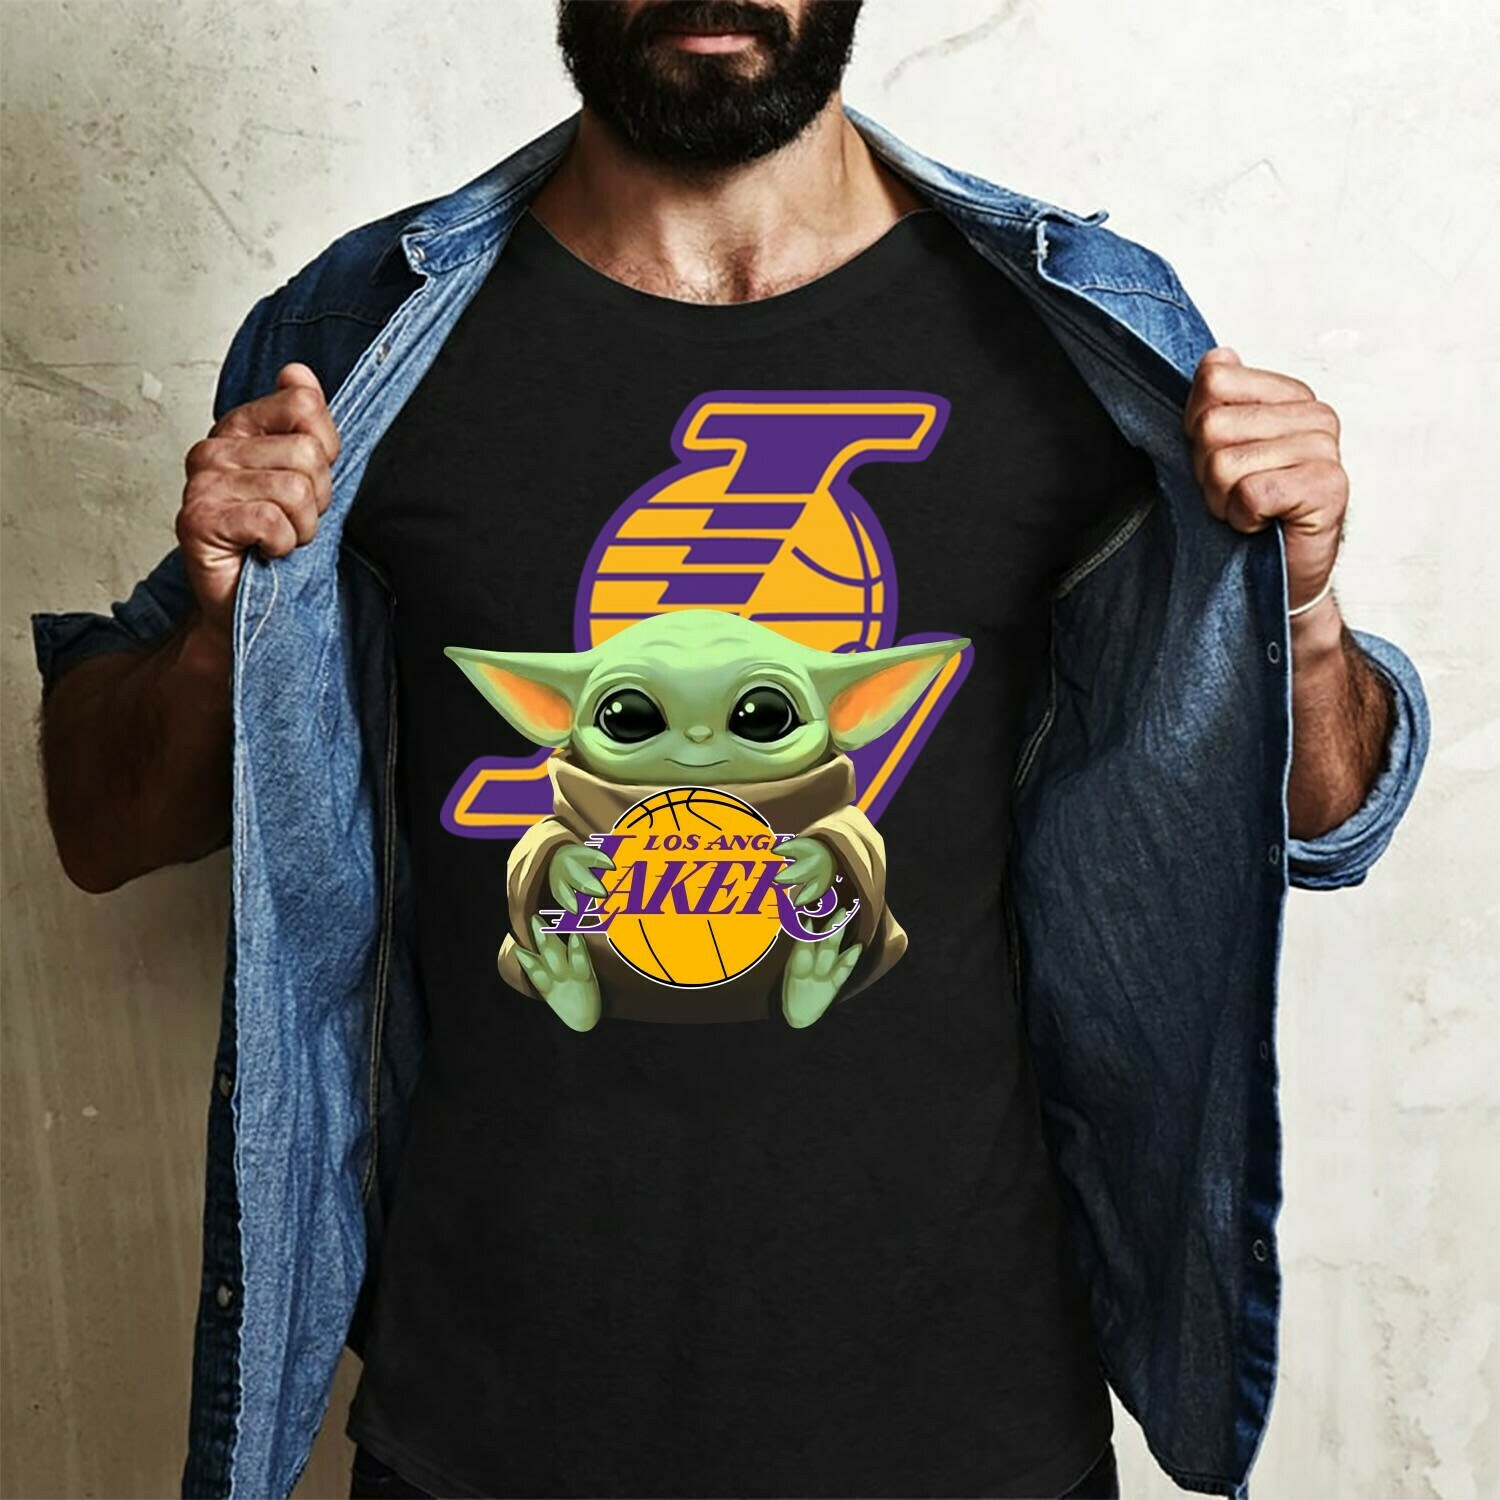 Los angeles Lakers Baby Yoda Star Wars The Mandalorian The Child First Memories Floating NBA Basketball Dad Mon Kid Fan Gift T-Shirt Long Sleeve Sweatshirt Hoodie Jolly Family Gifts